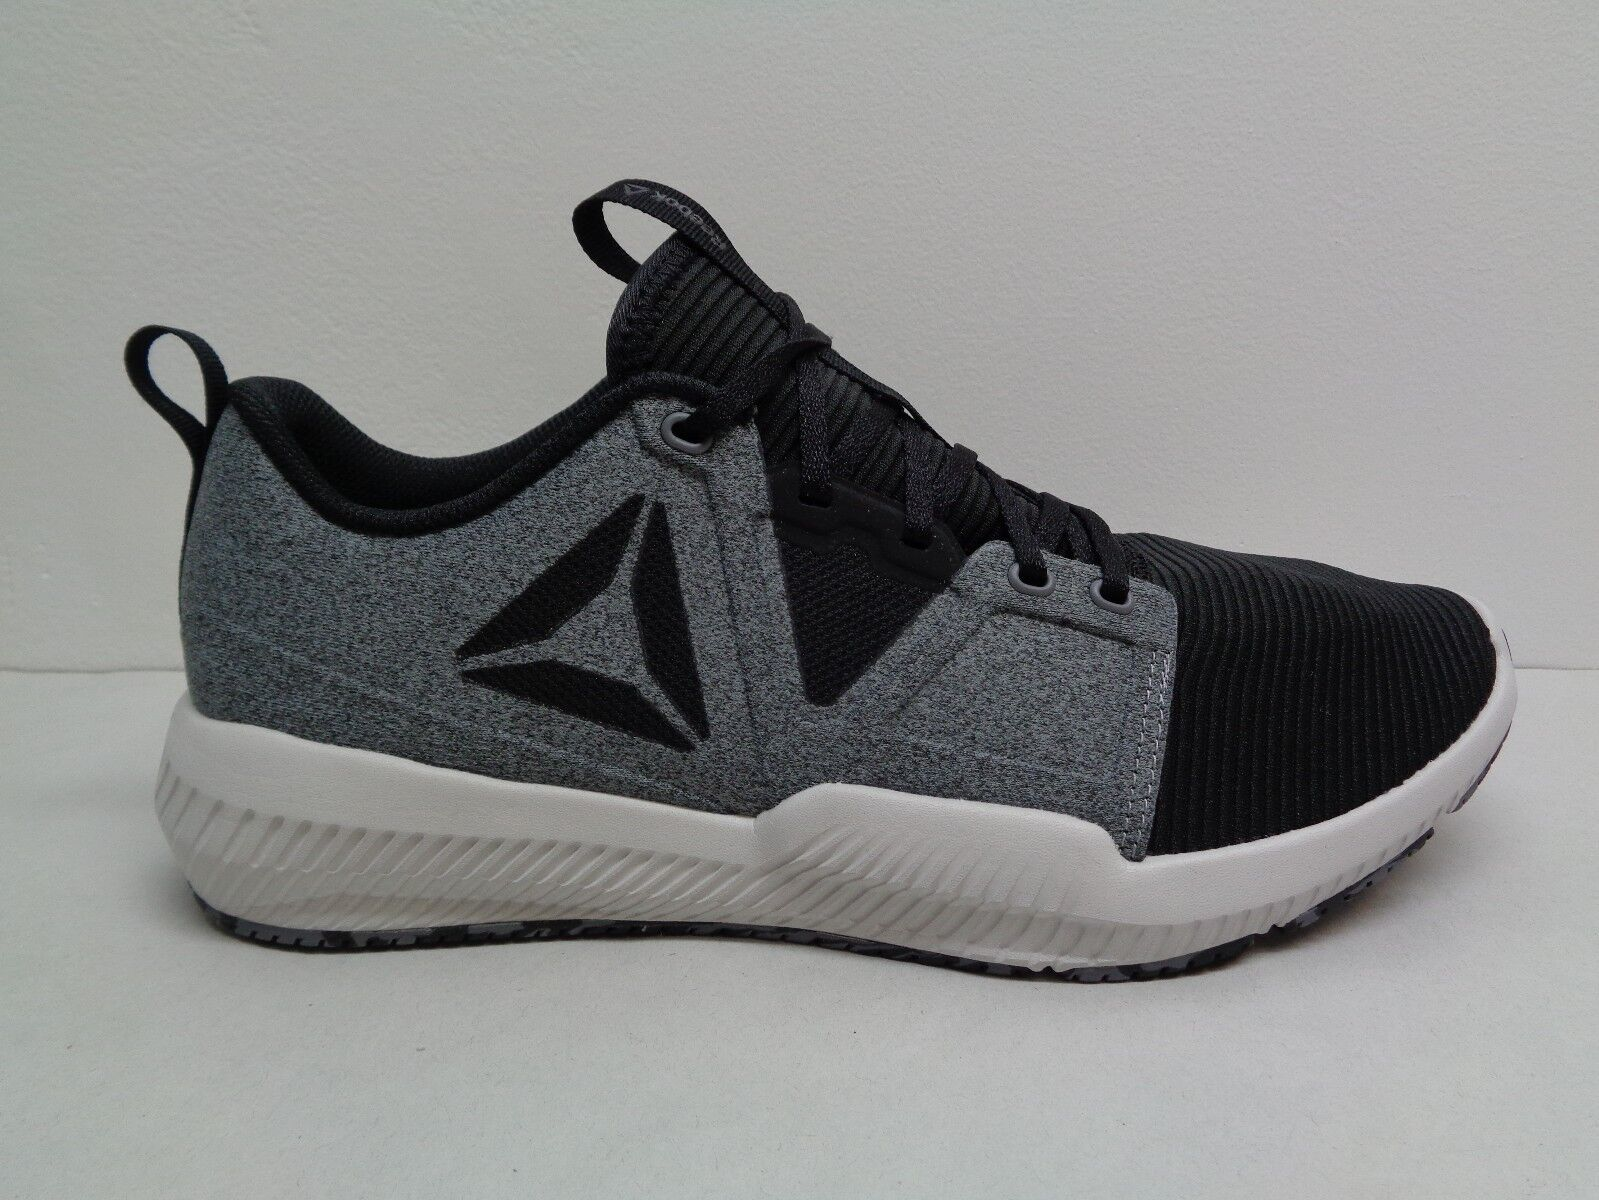 0fcc17f7aeee Reebok Men s Hydrorush TR SNEAKERS Athletic Tennis Shoes Size 12 for ...